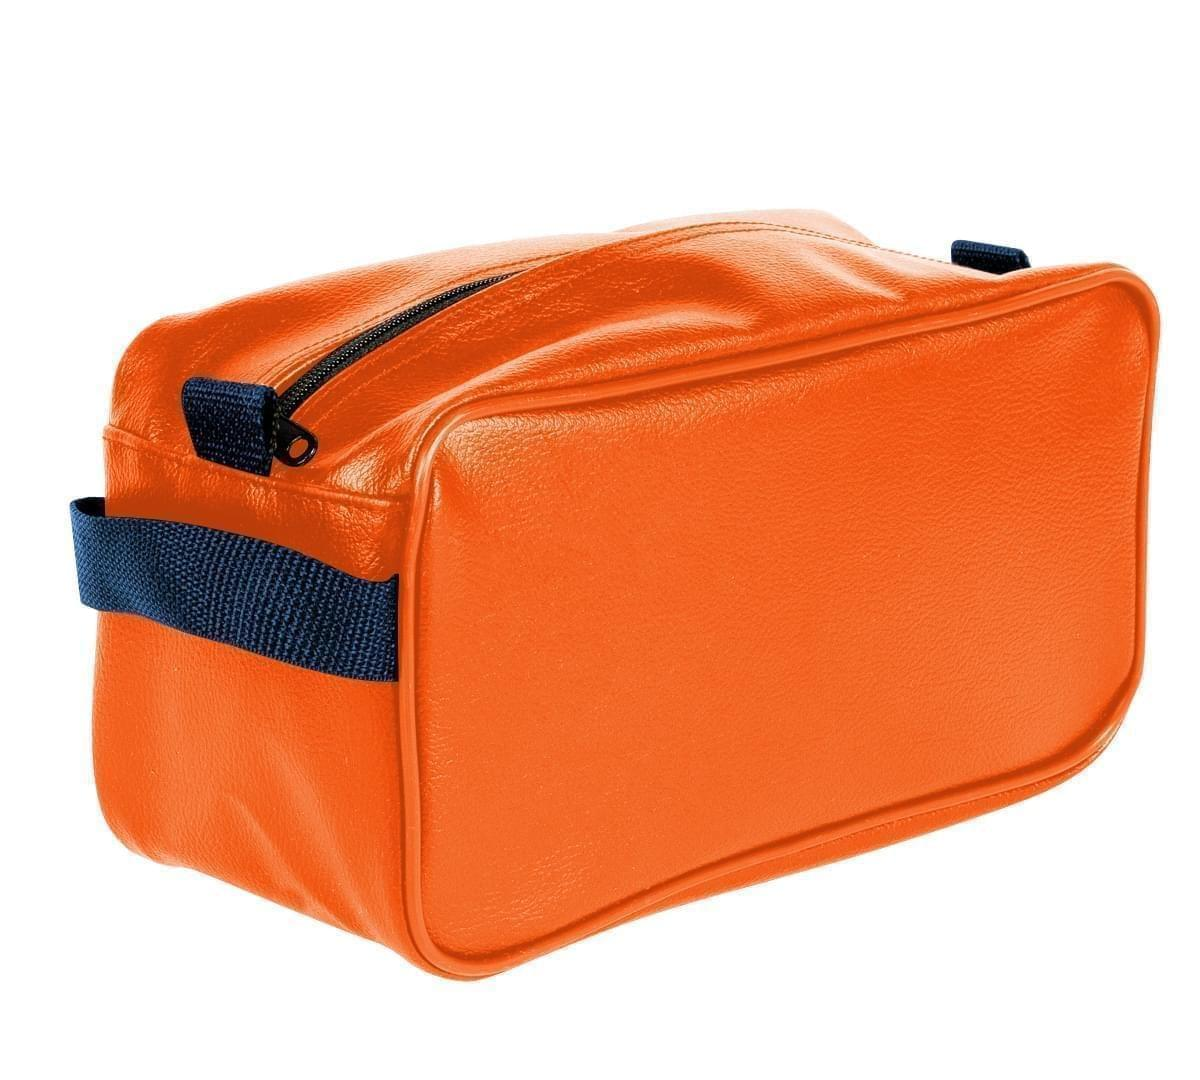 USA Made Cosmetic & Toiletry Cases, Orange-Navy, 3000996-AXZ